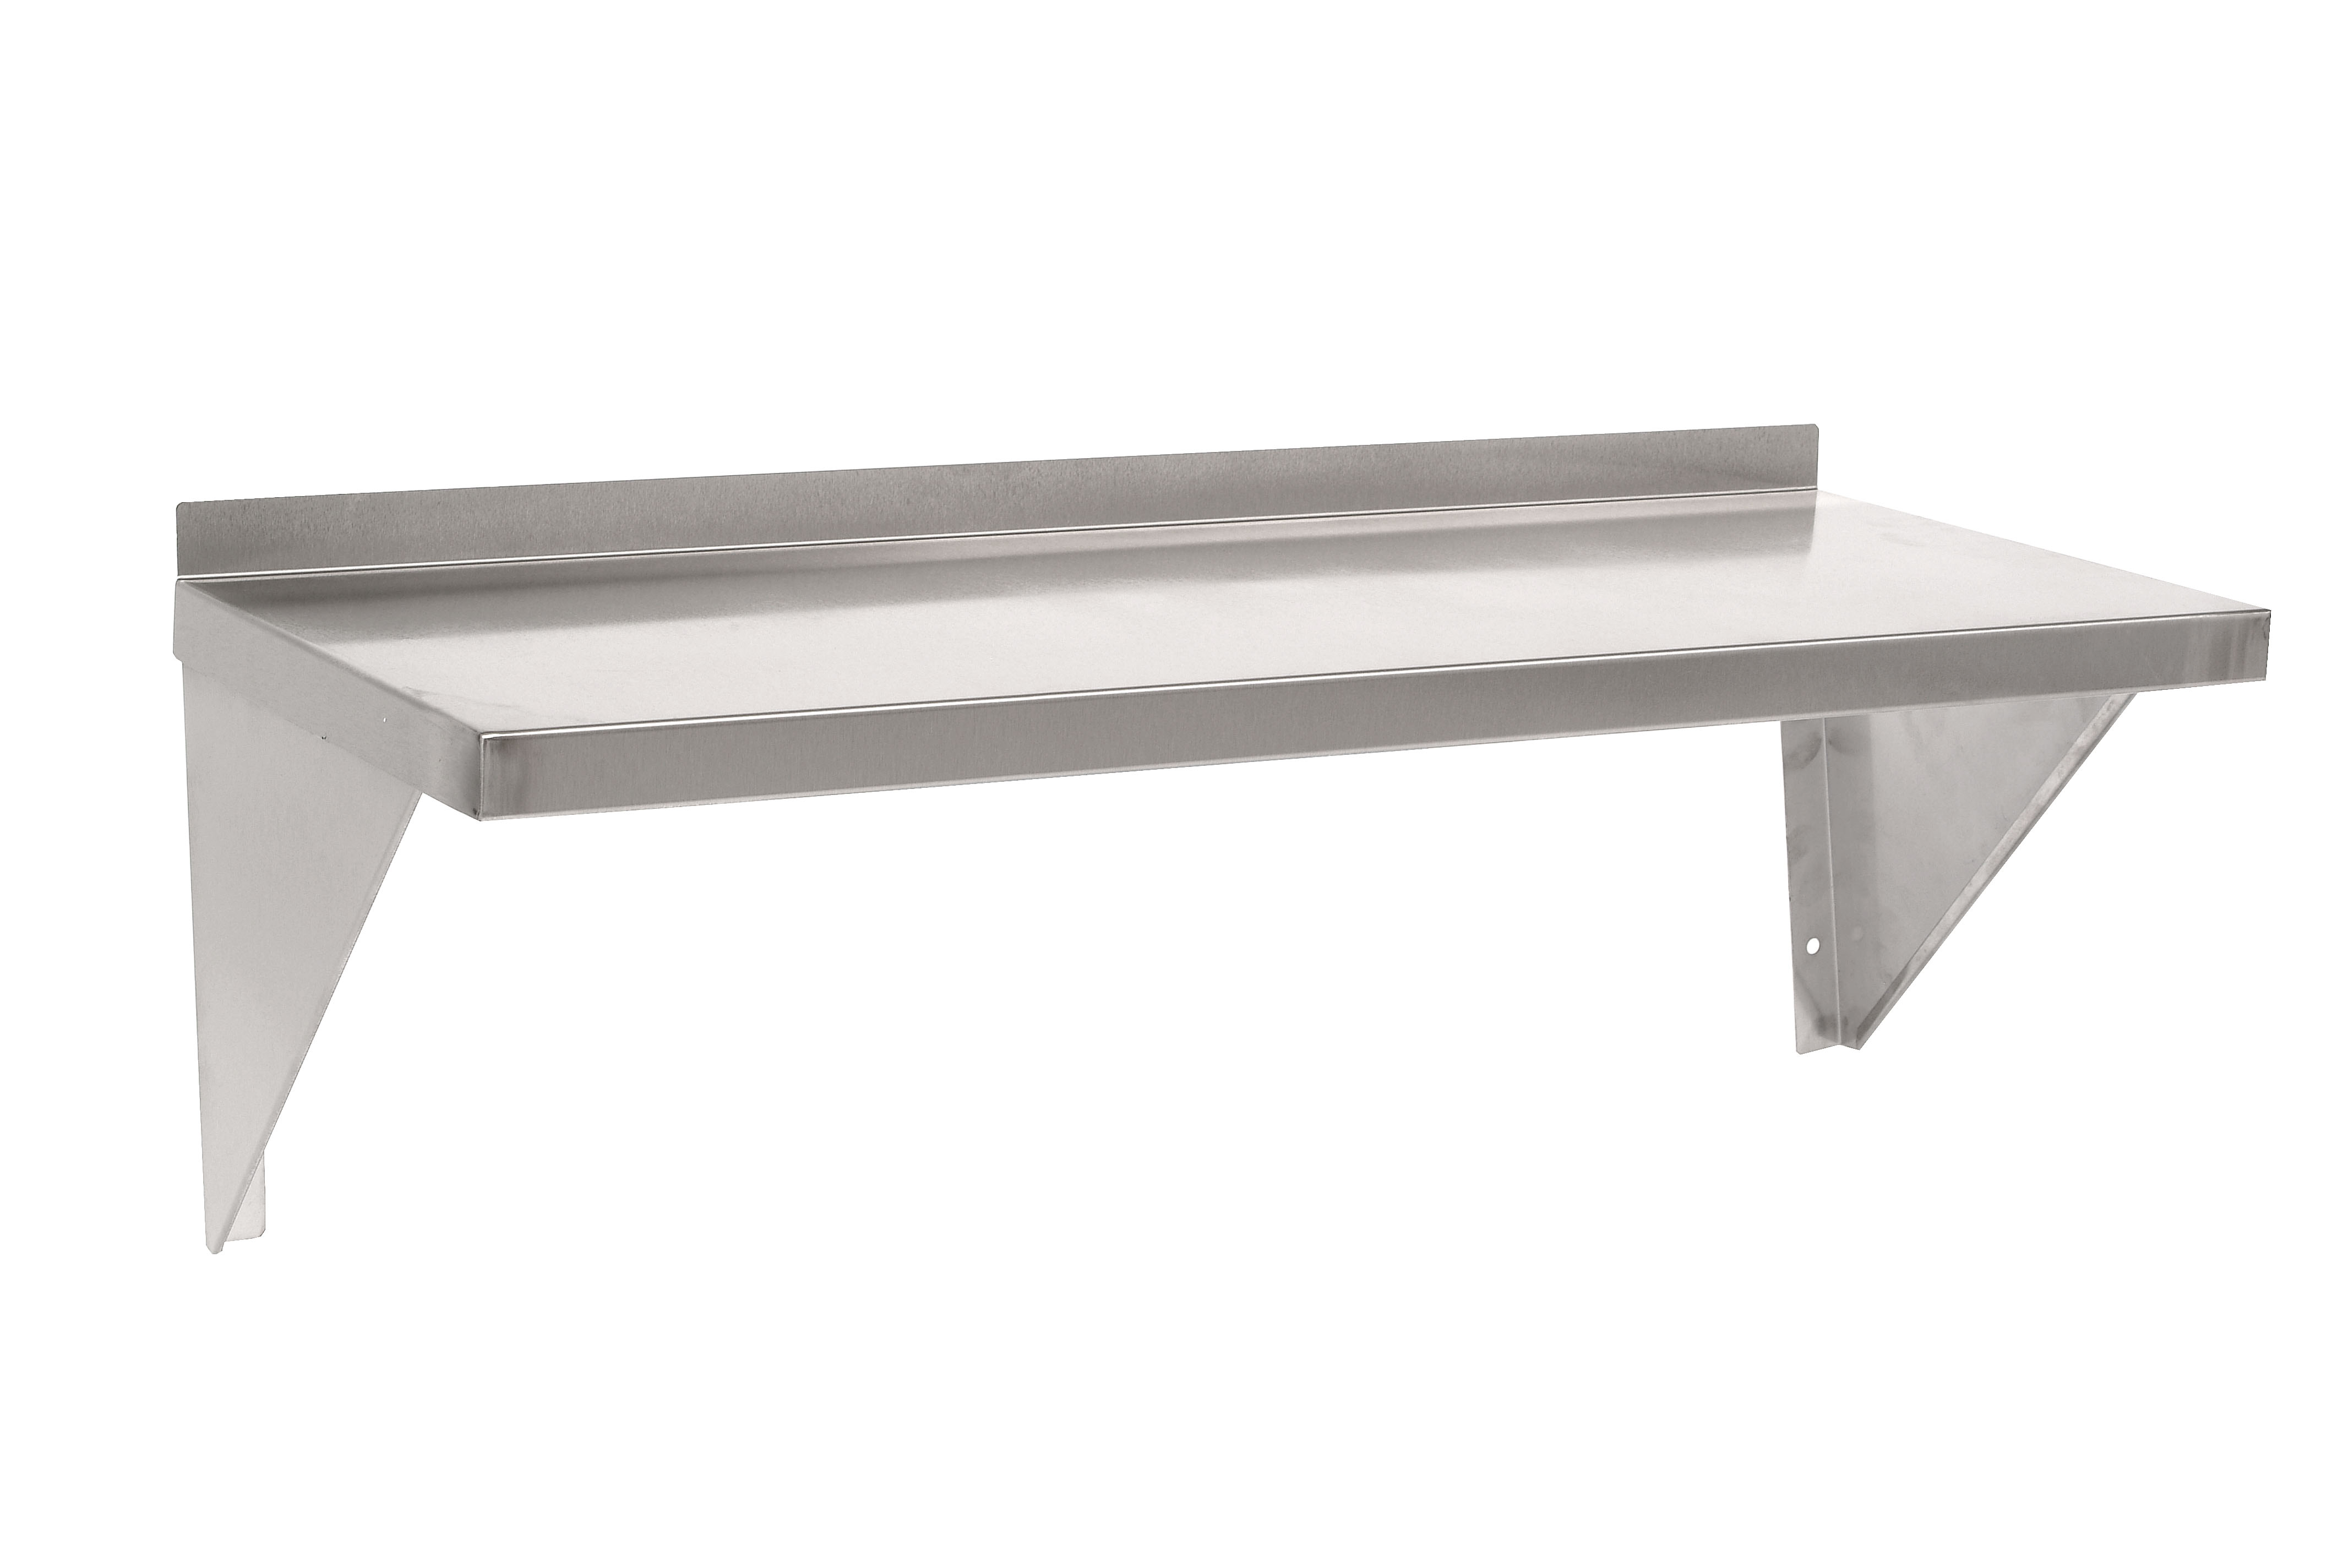 Stainless Steel Shelves Stainless Steel Storage Wall Shelves Shelf3w Parry